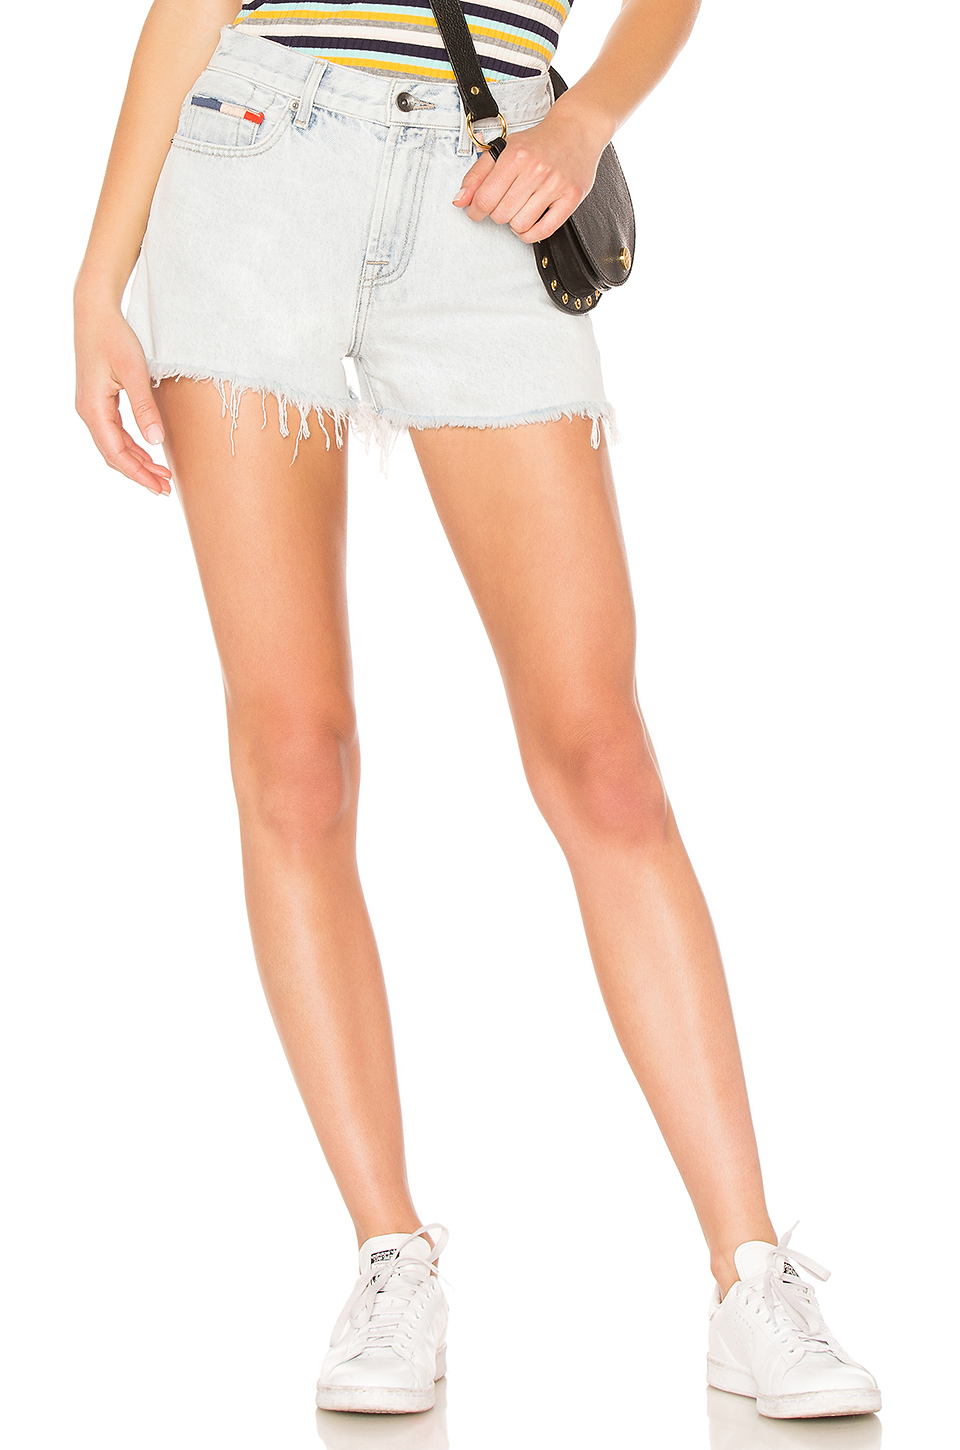 Splendid x MARGHERITA MISSONI Amore Jean Short in Capri